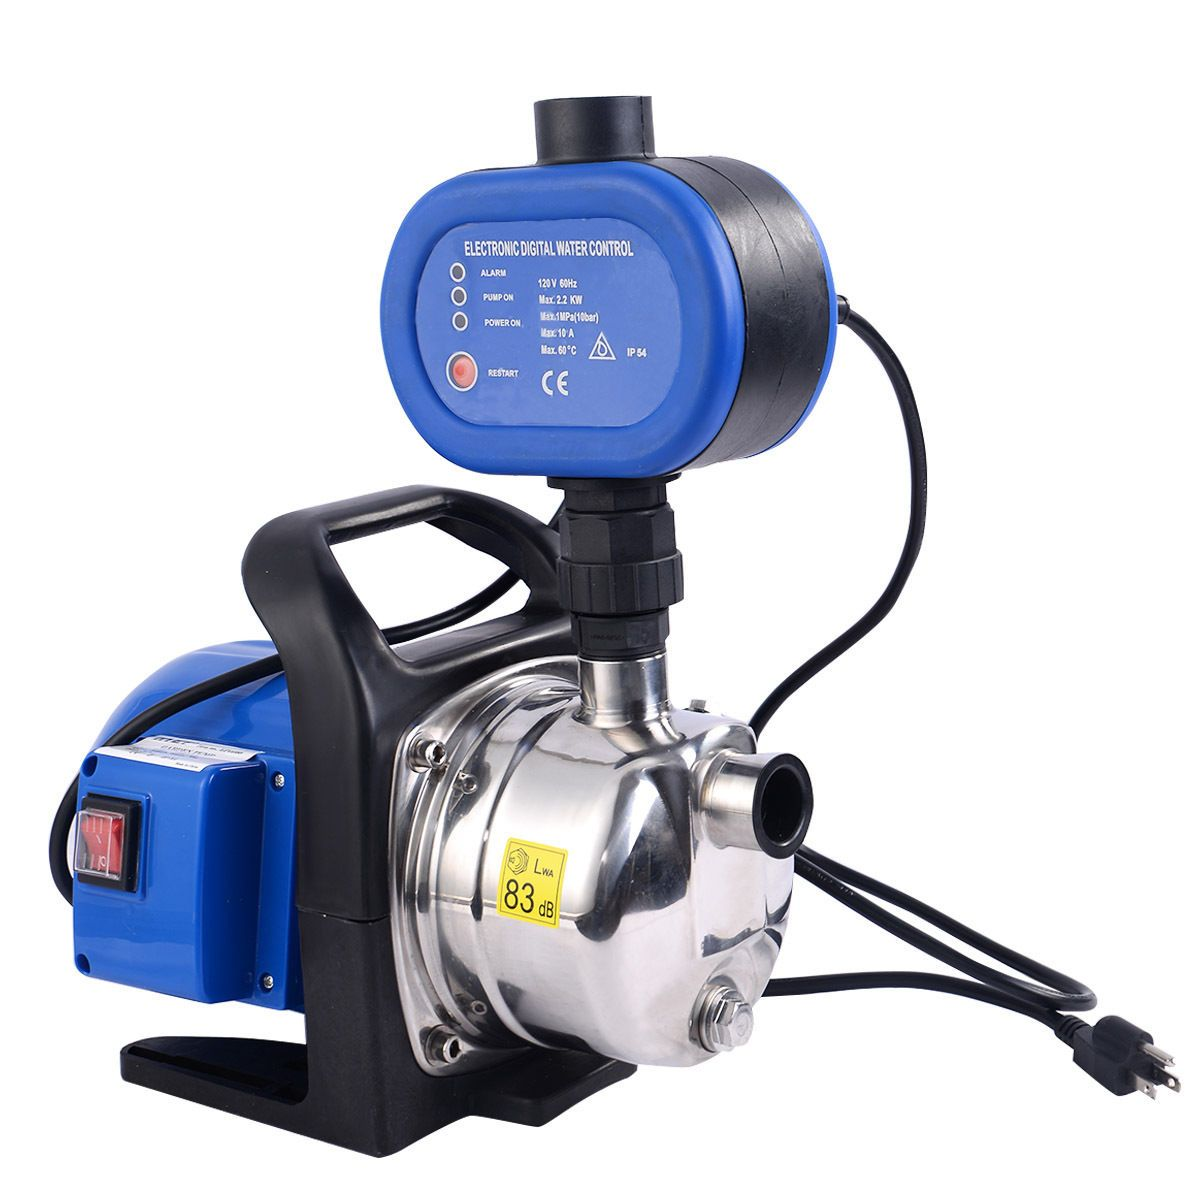 Goplus 1200w garden water pump shallow well electric for Garden water pump